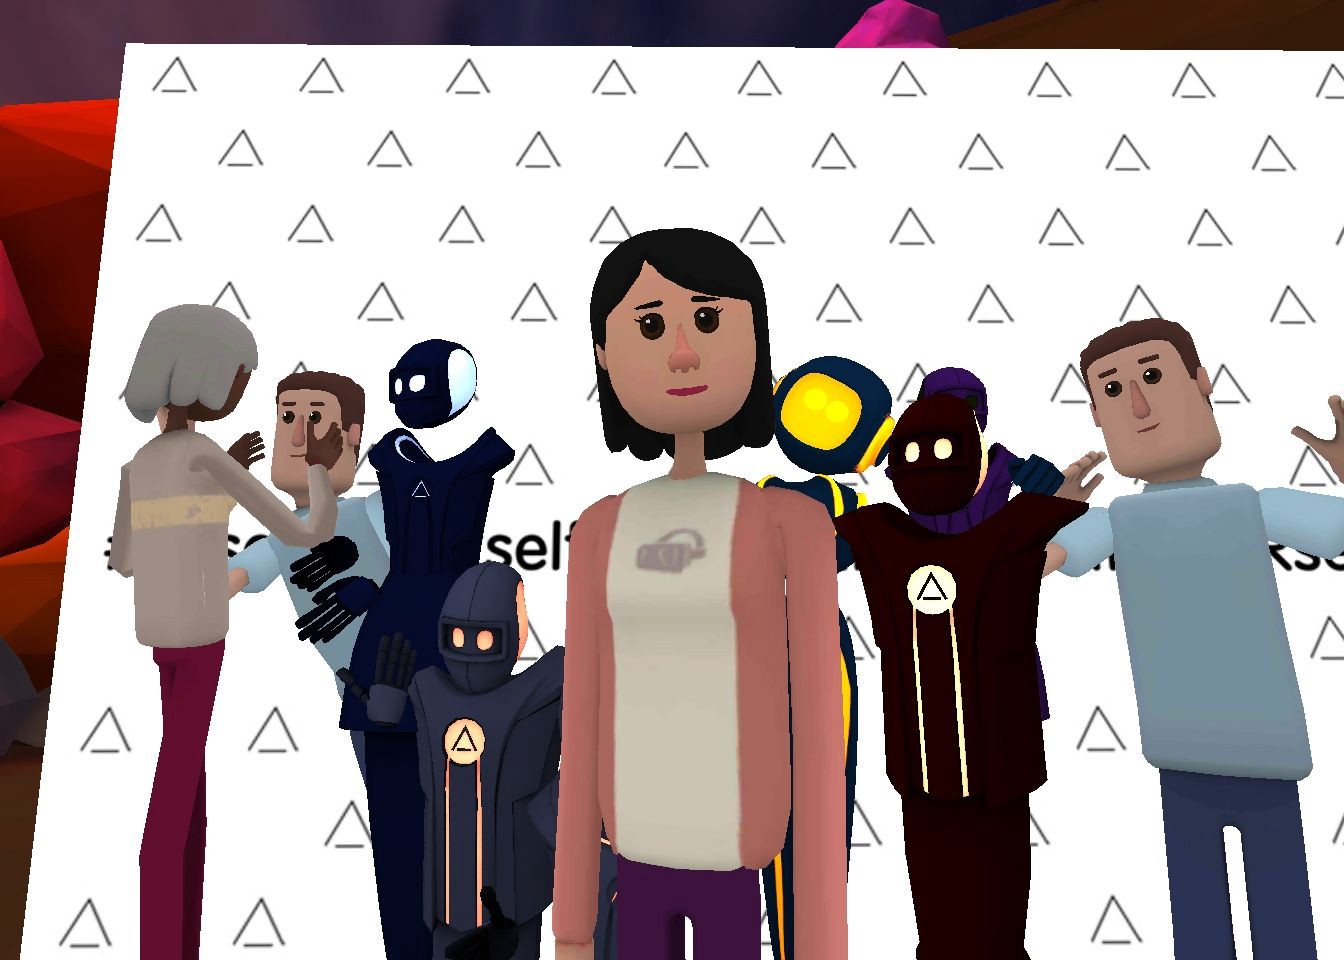 /be-there-together-forever-goodbye-with-intense-avatar-stare-altspacevr-d57d3b42ac8c feature image